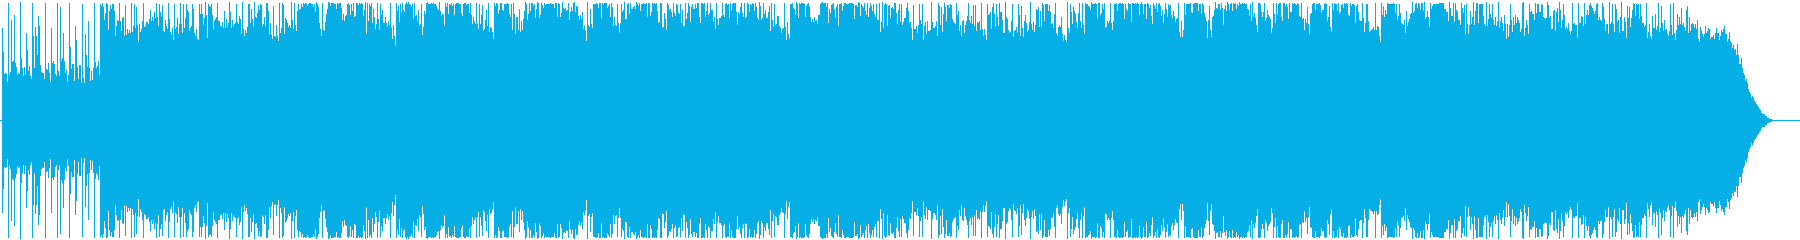 Melody silently flowing in the dark's reproduced waveform